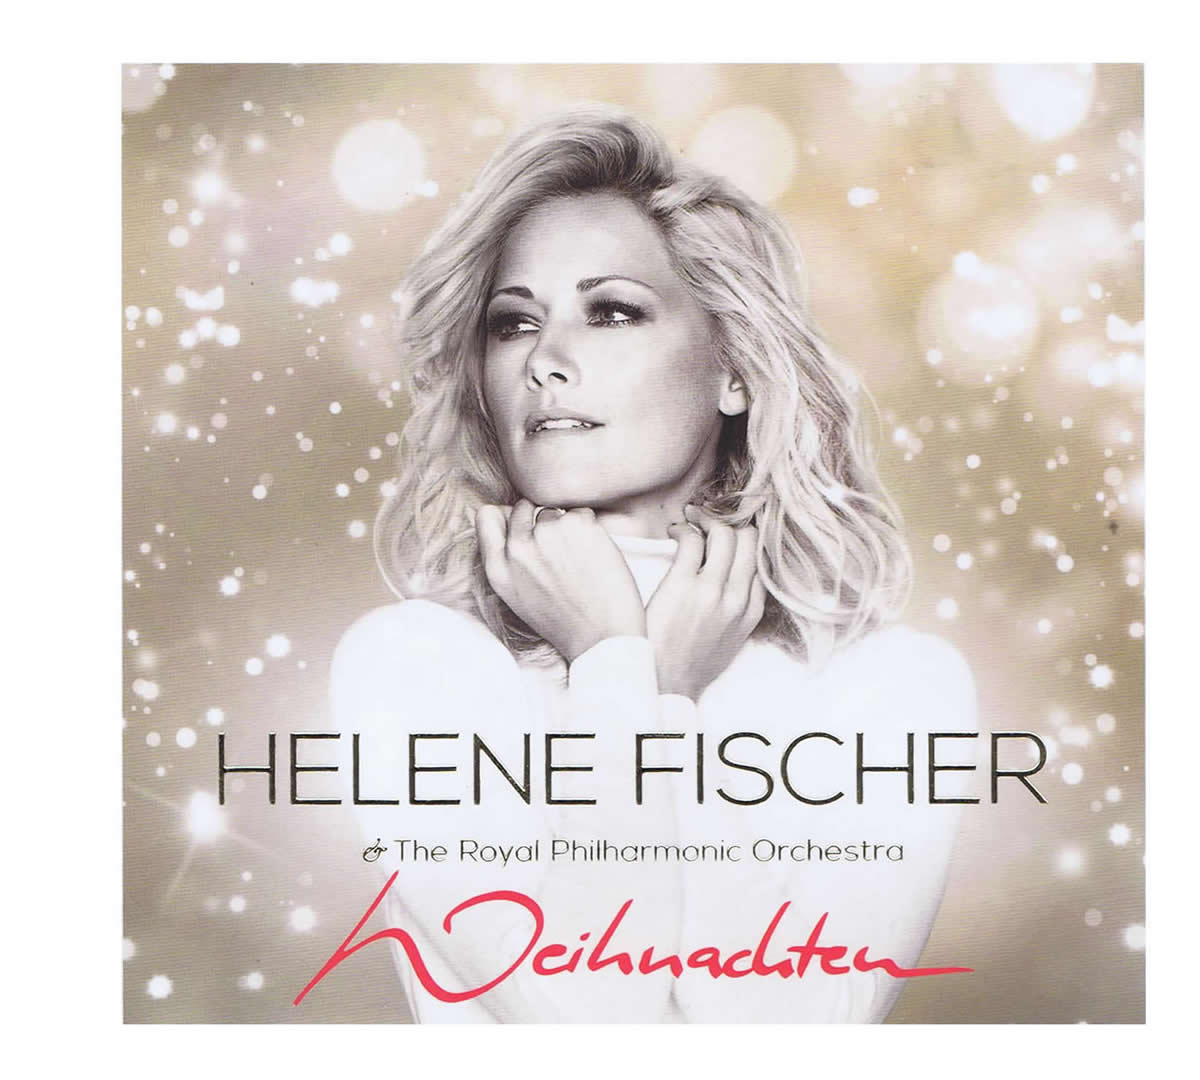 ultratop.be - Helene Fischer & The Royal Philharmonic Orchestra ...